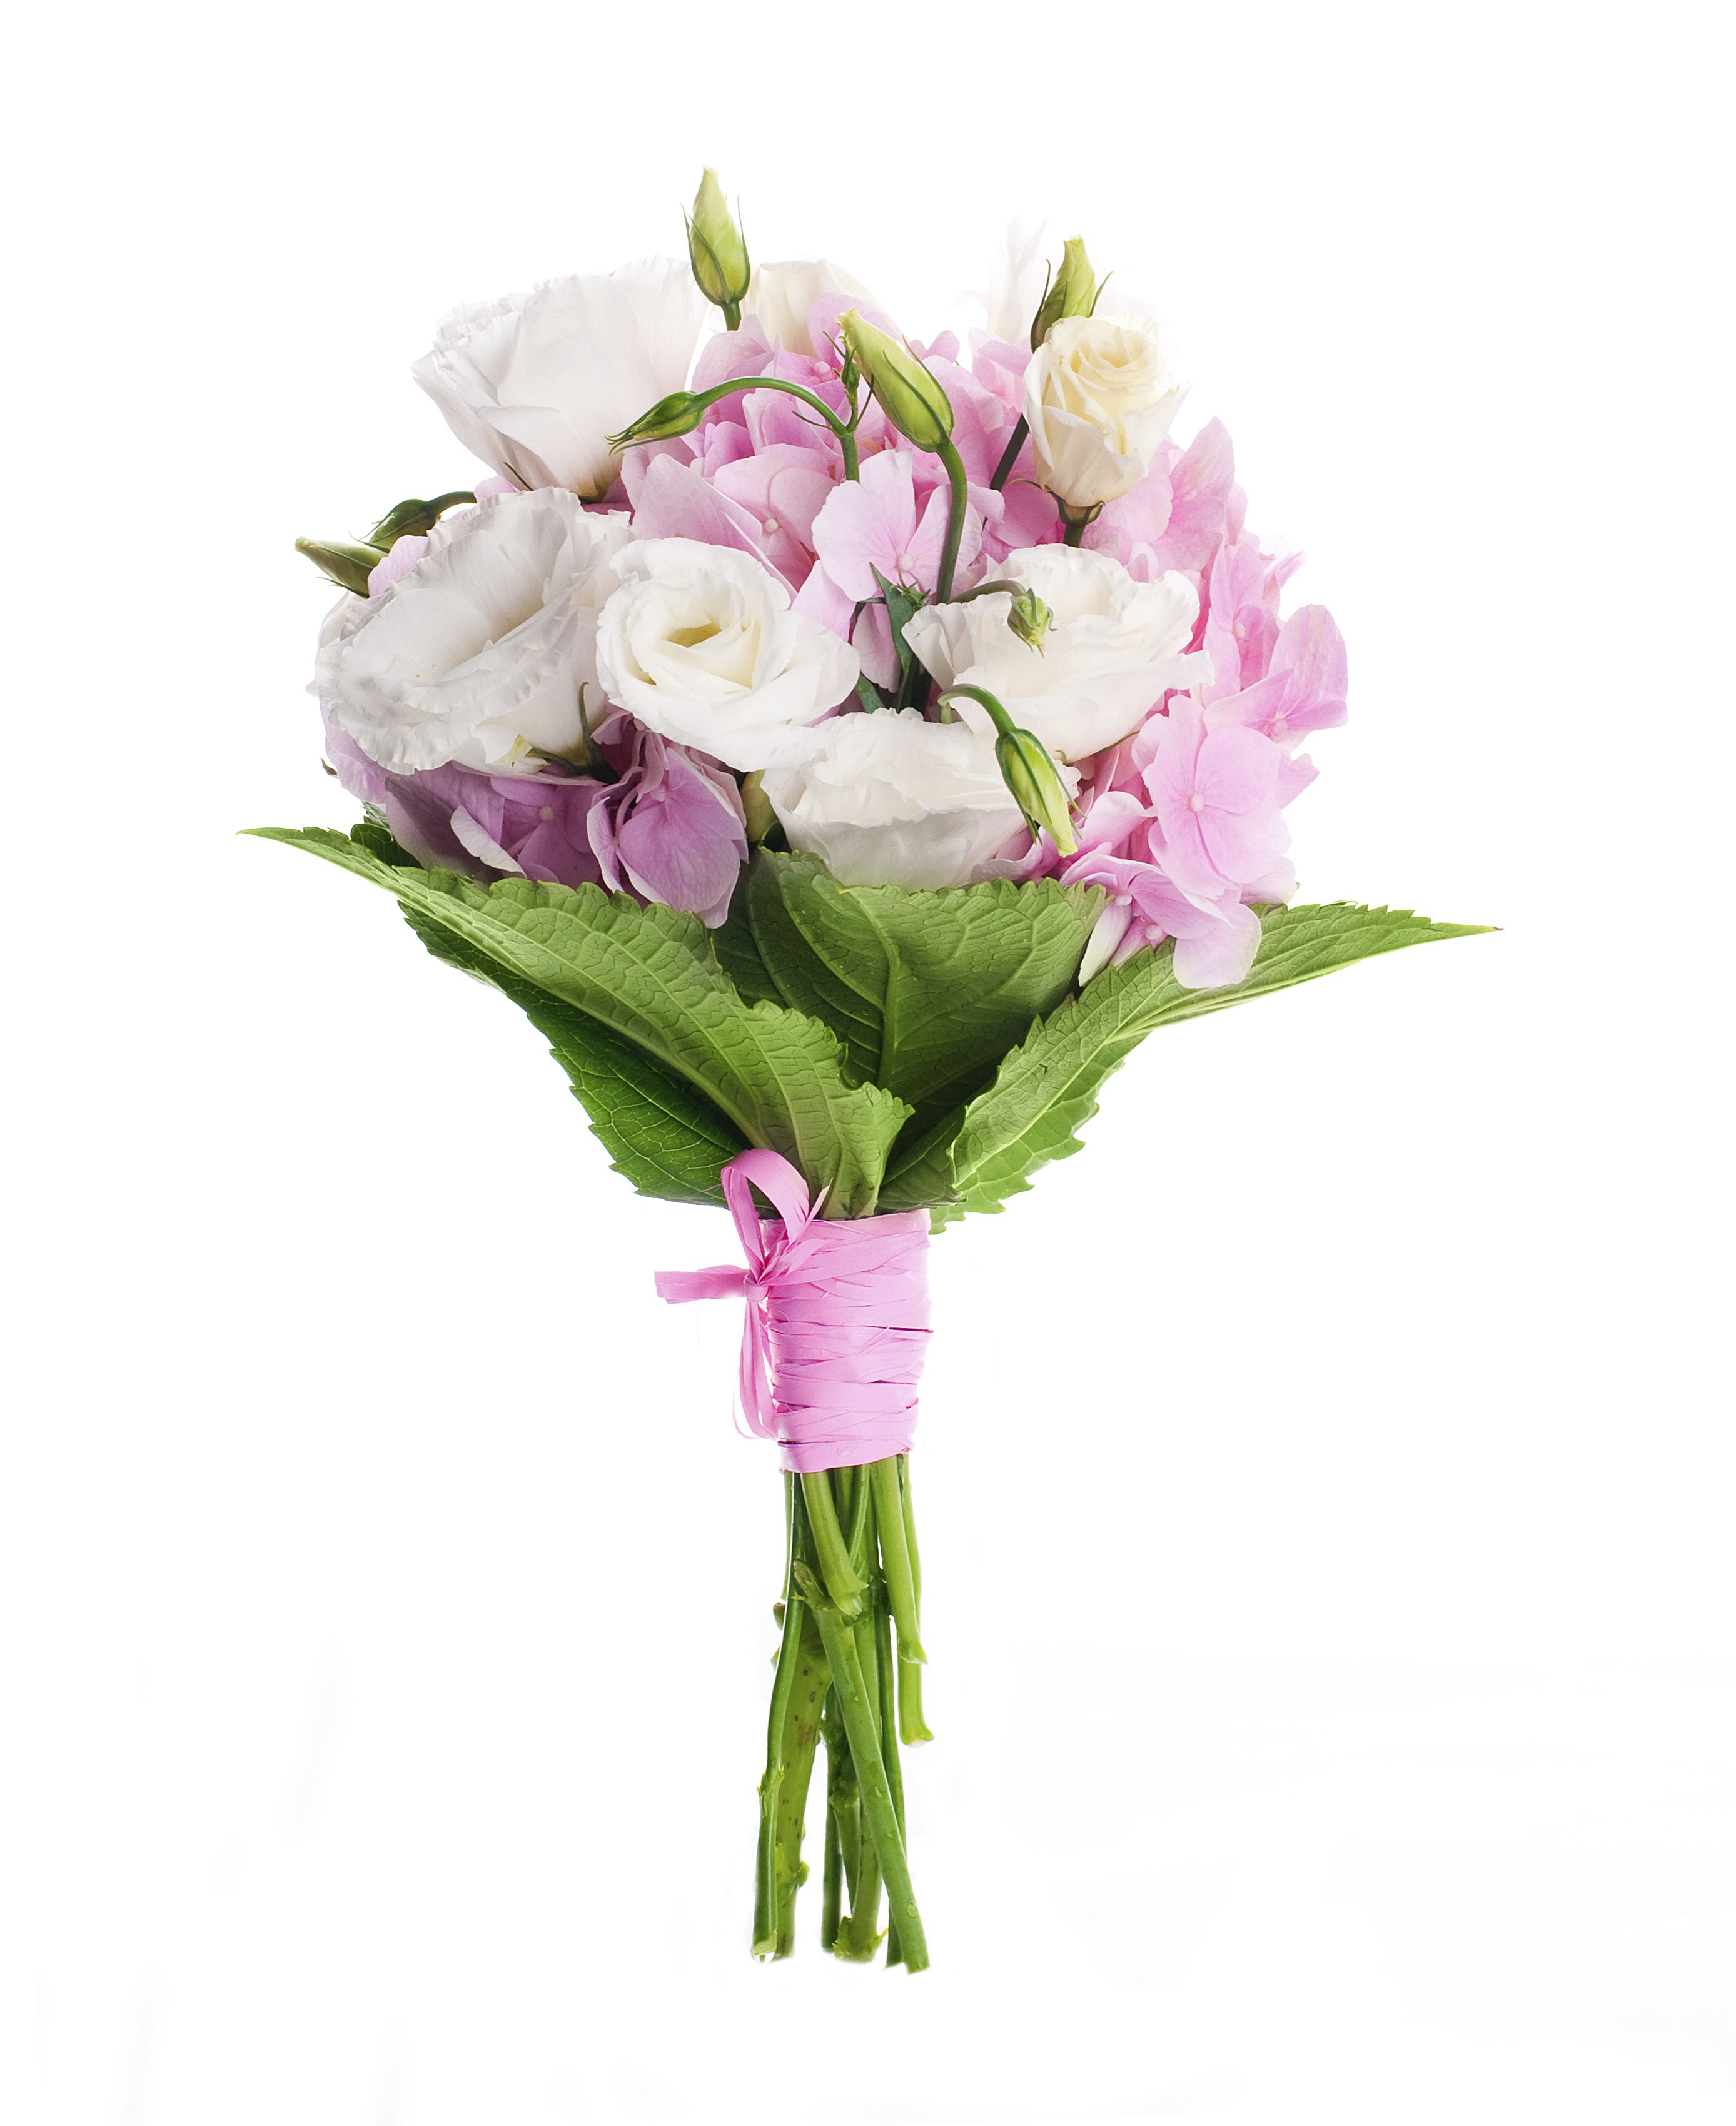 Wedding Spring Flowers: Spring Flowers In Loosely Wrapped And Hand-tied Bouquet. A